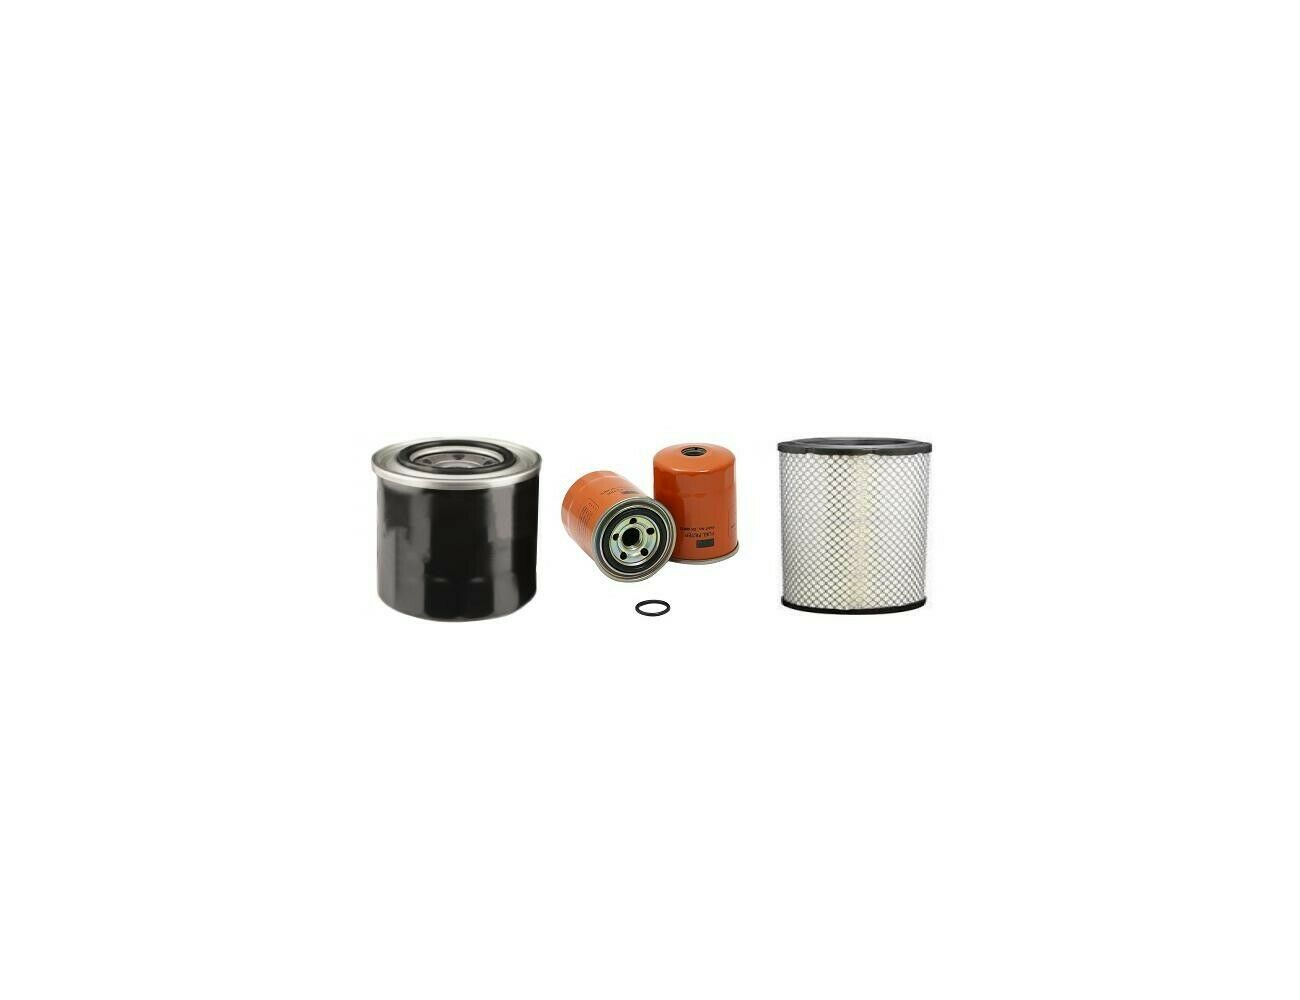 Tractor Fuel Filters Kioti Dk551c Filter Service Kit Air Oil W 1 Of 1only 3 Available